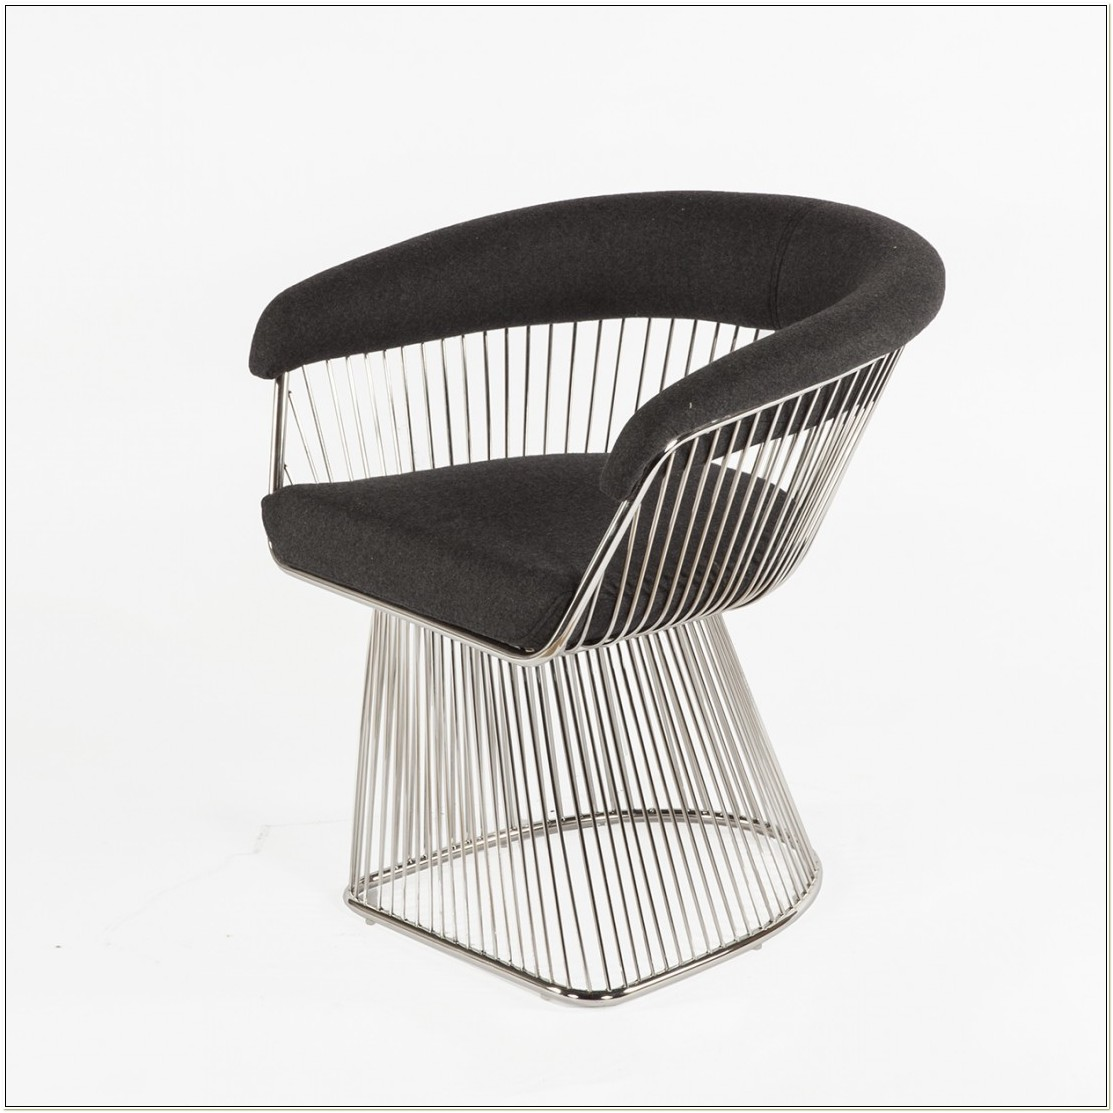 Platner Lounge Chair Reproduction